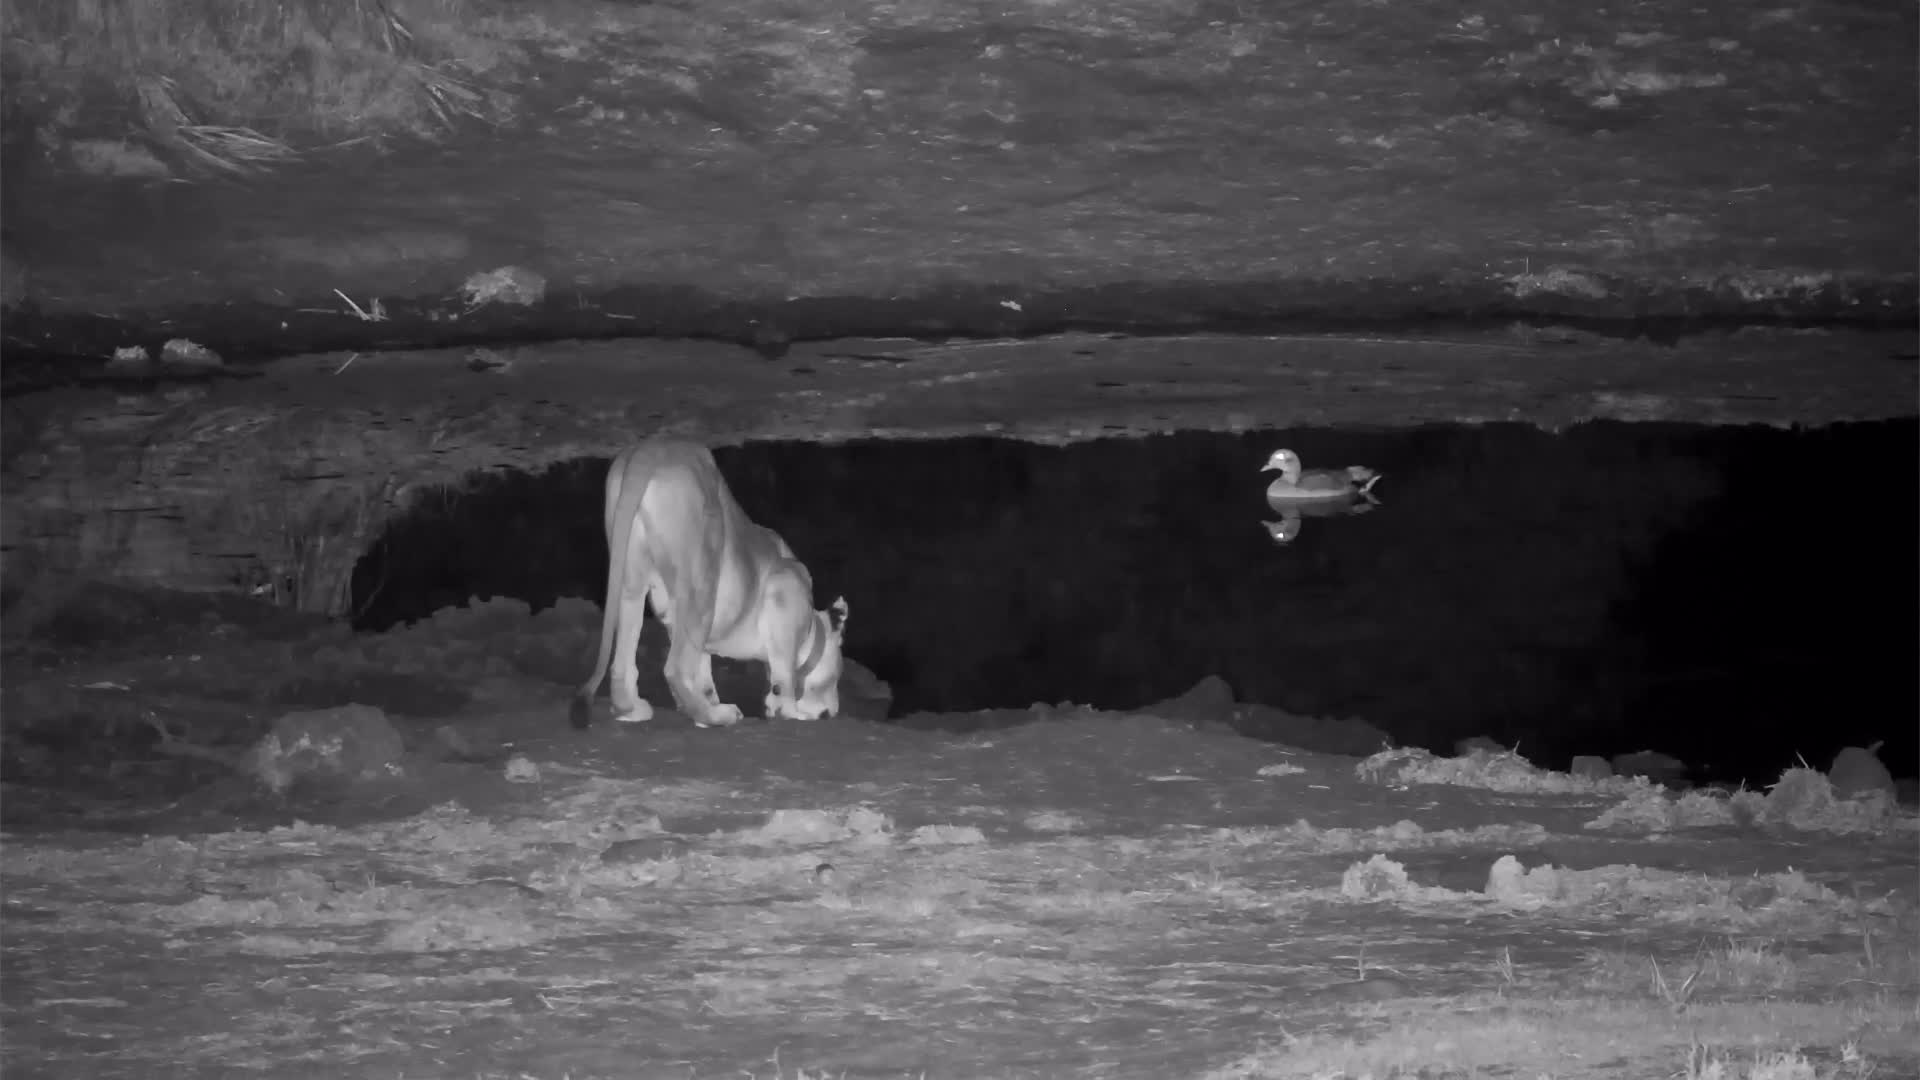 VIDEO: Collared Lioness Comes to Tembe Waterhole for a Drink